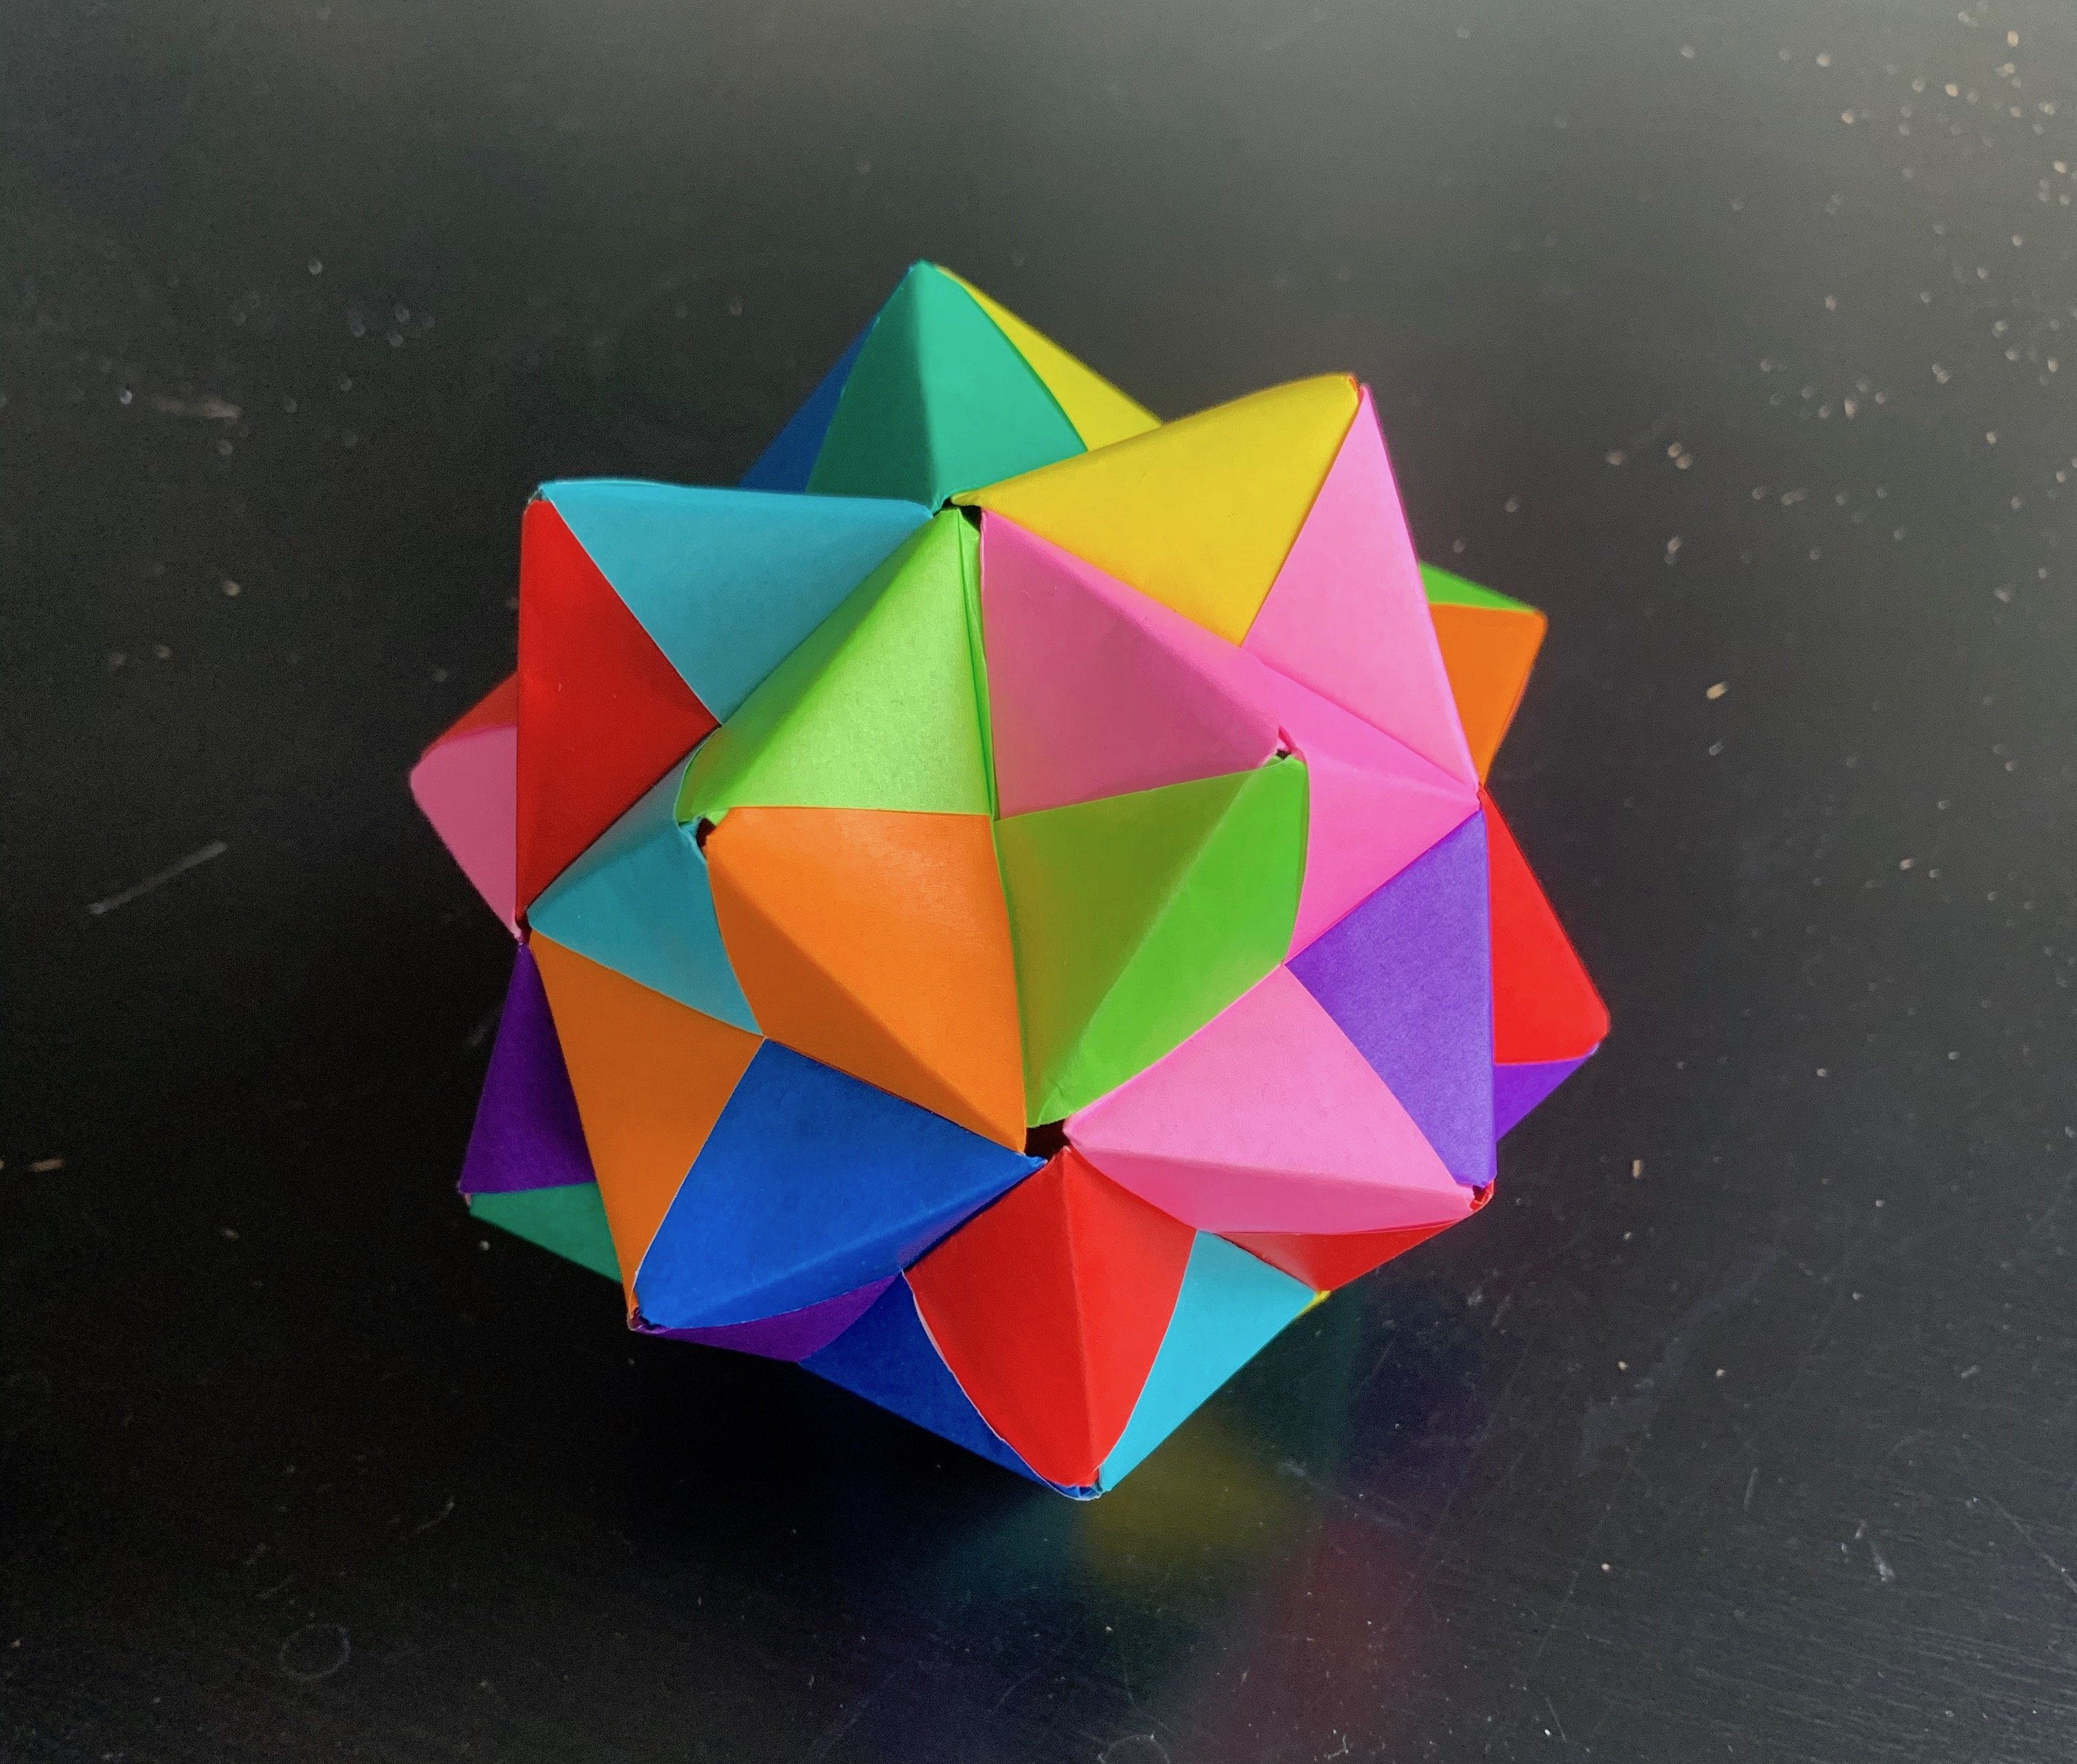 image of a sonobe unit origami ball